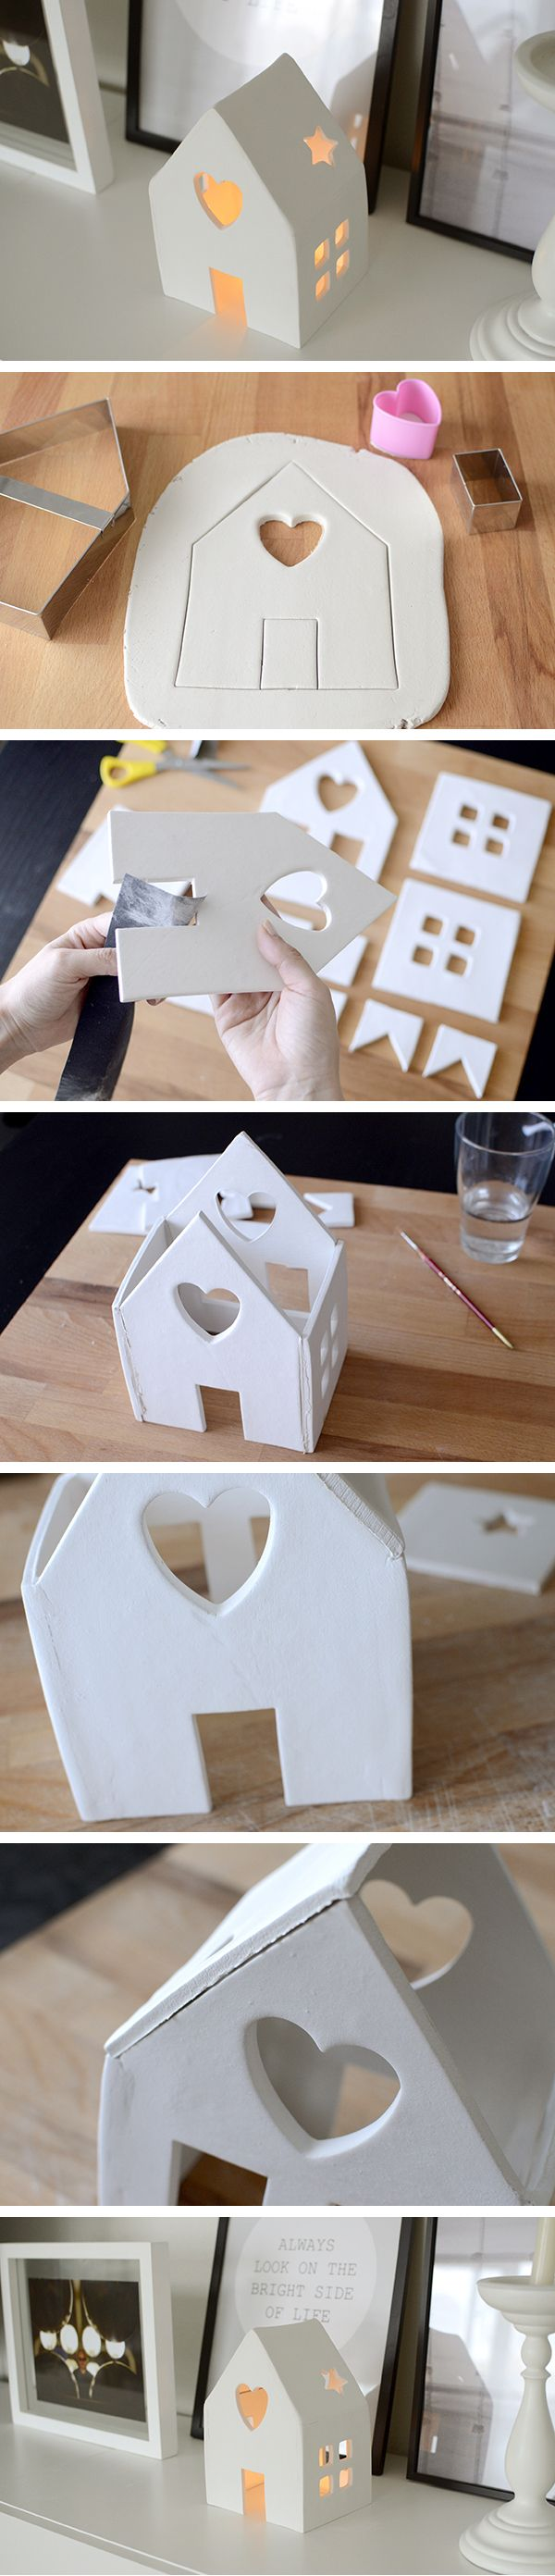 DIY: Beautiful House Candle Holder